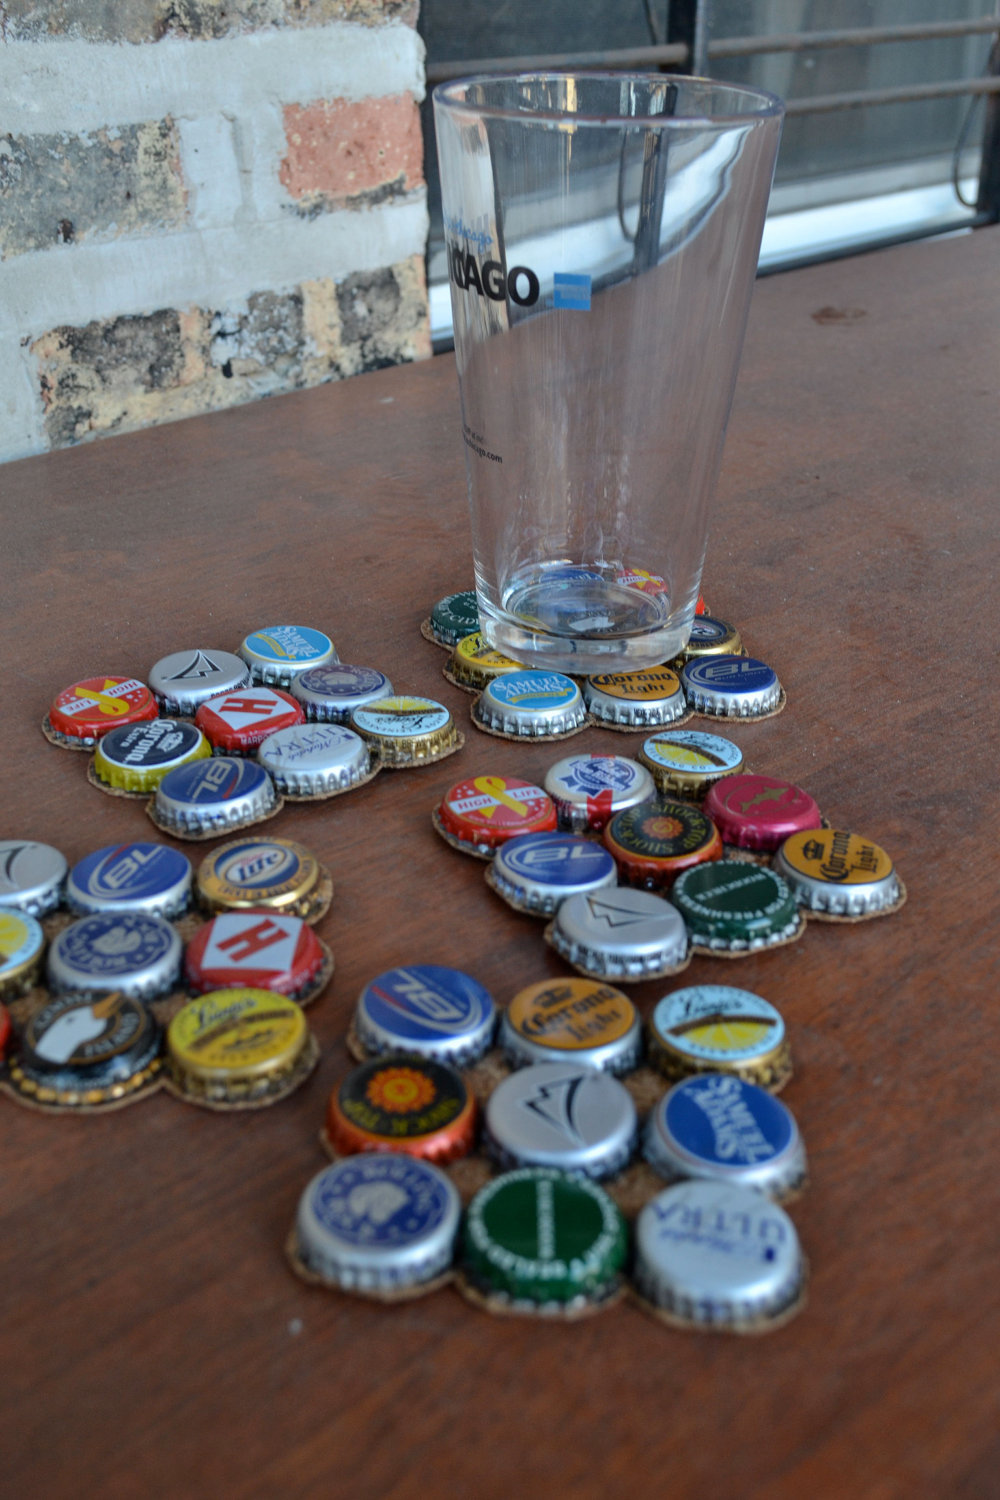 50 tips and ideas for a successful man cave decor bottlecaps coaster amipublicfo Images